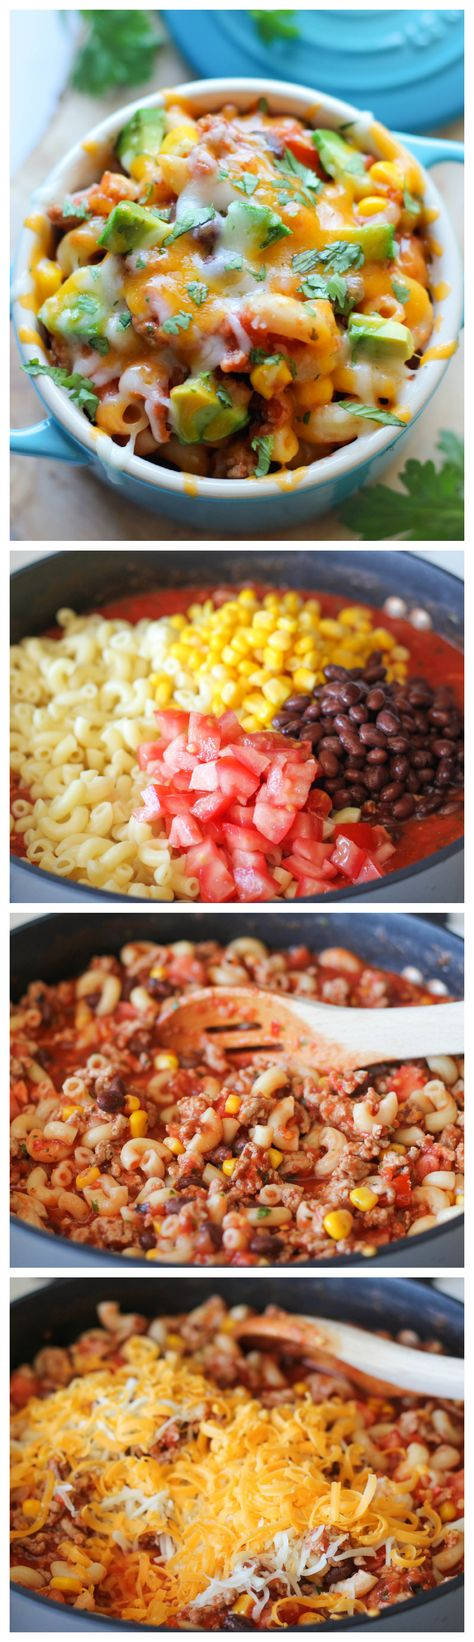 One Pot Mexican Skillet Pasta - Holy this looks good and easy!